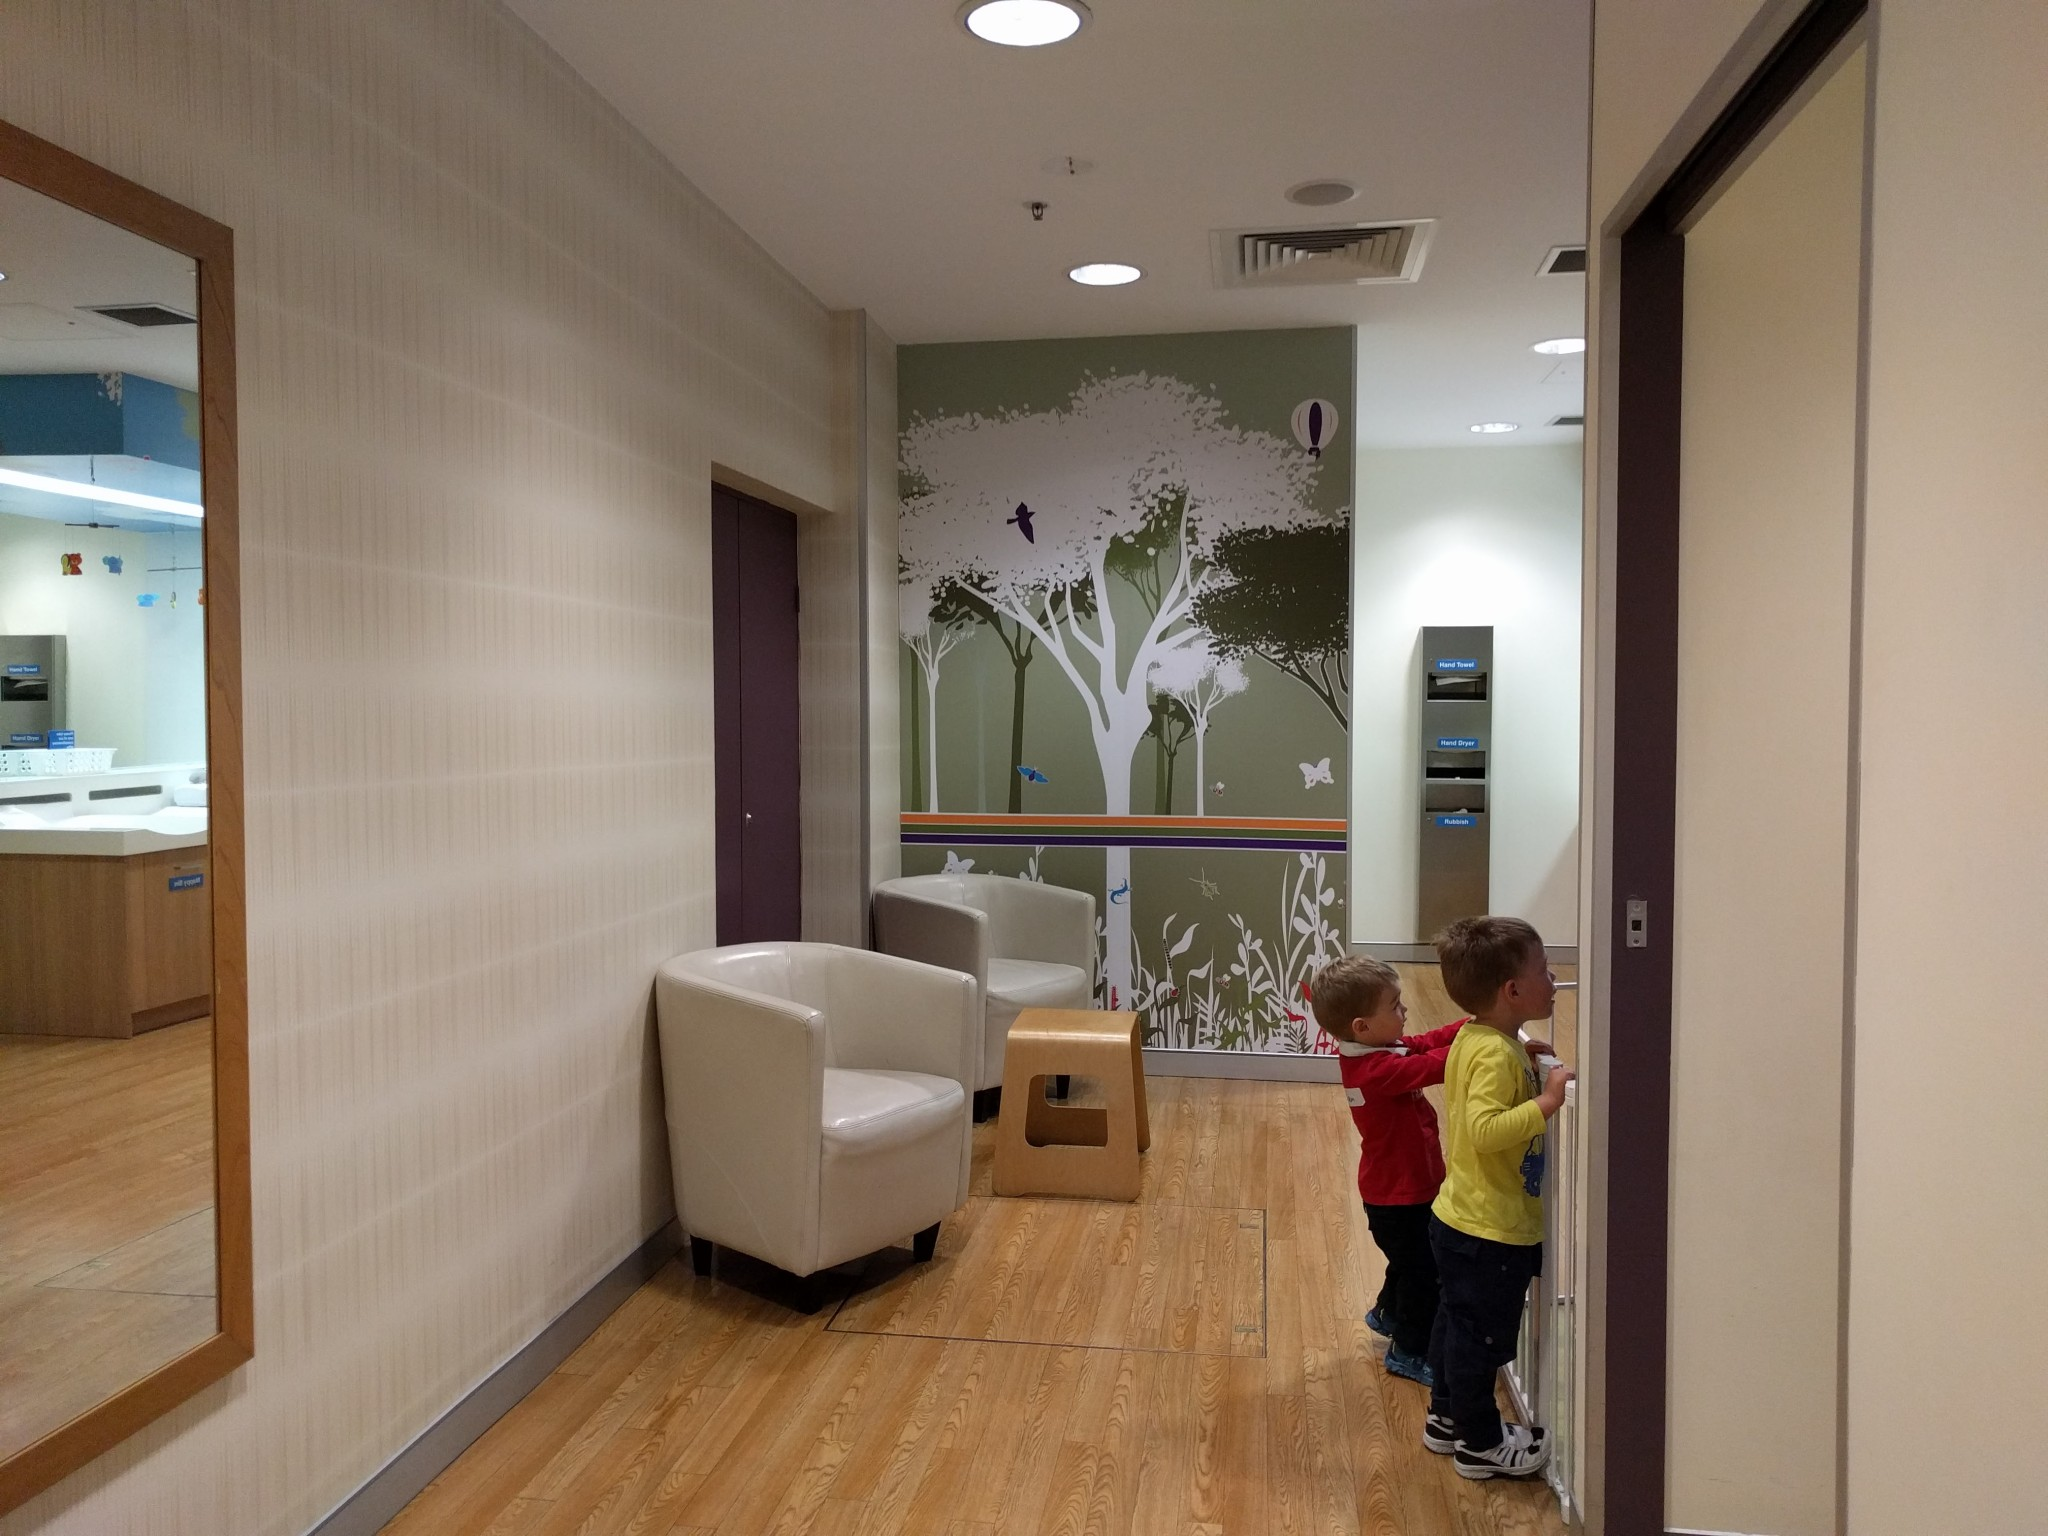 Stockland Baulkham Hills parents room